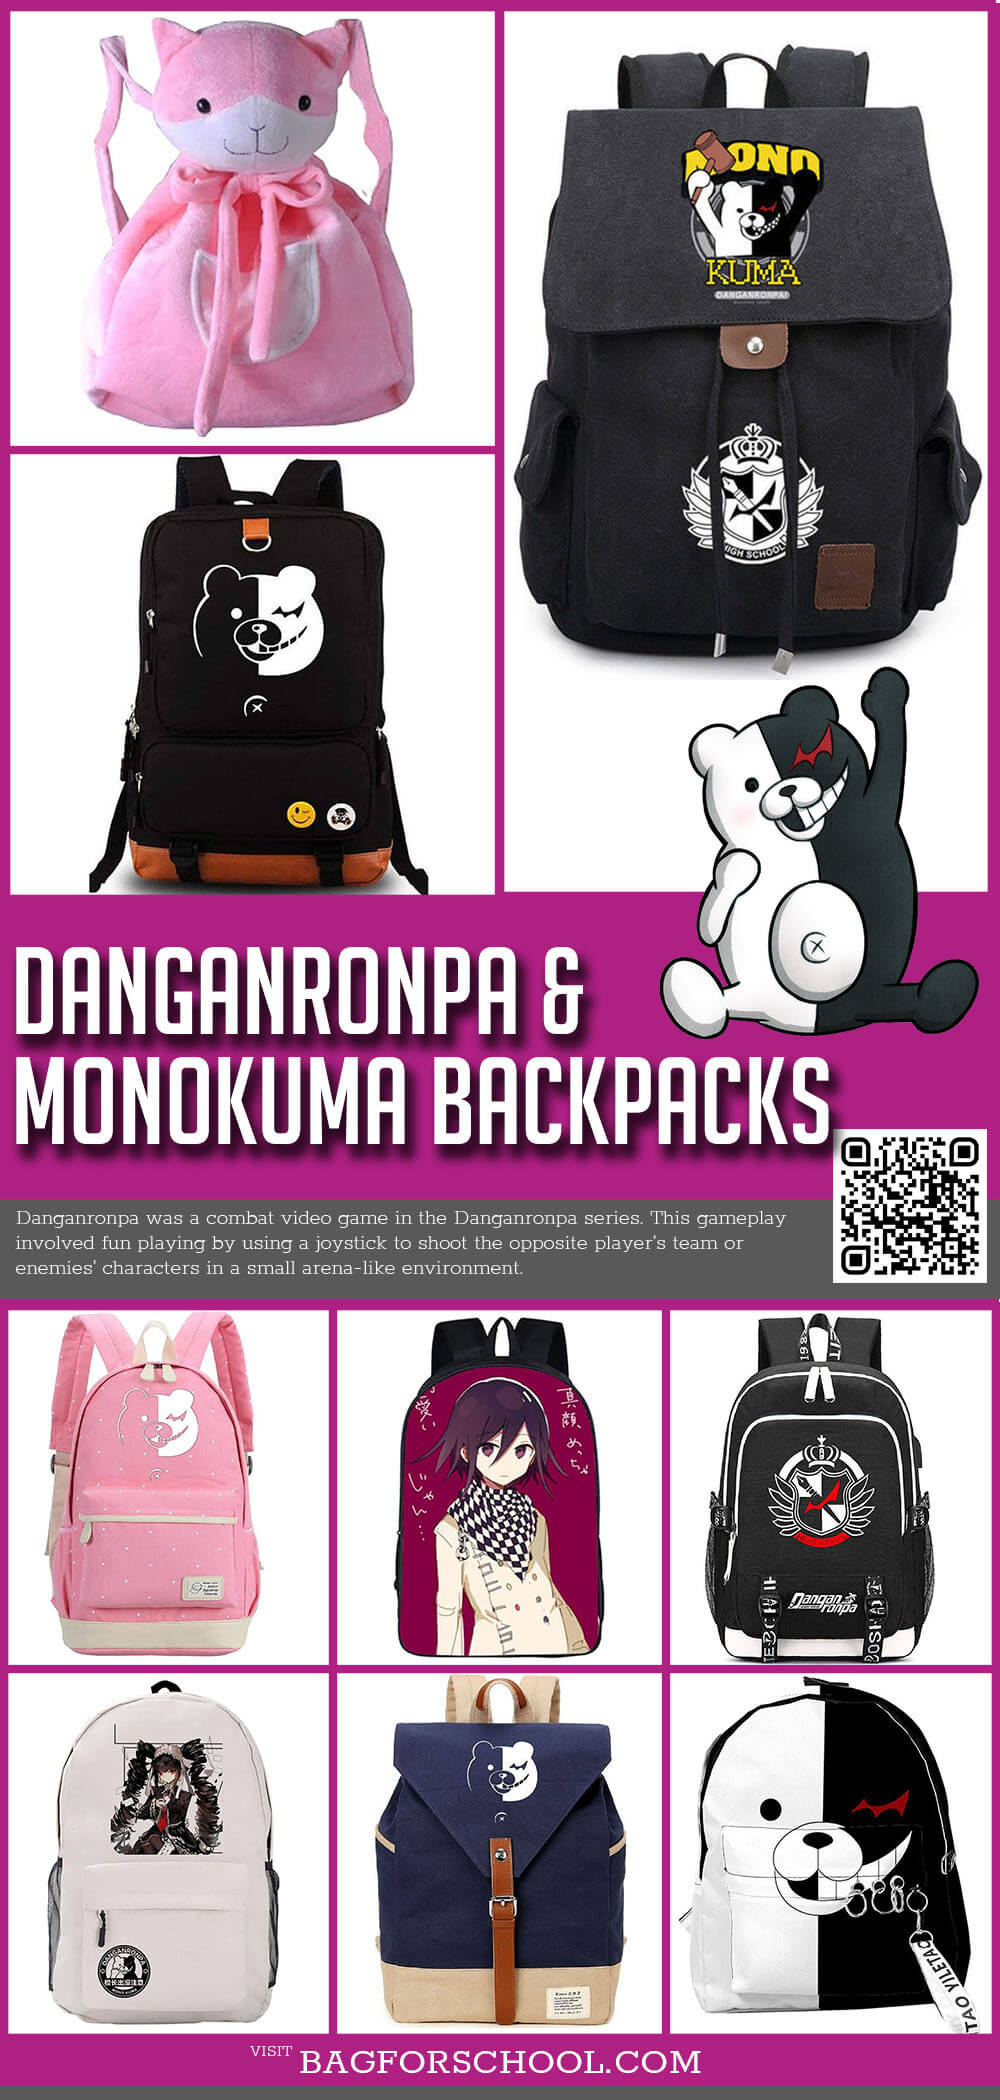 Danganronpa Monokuma Backpacks